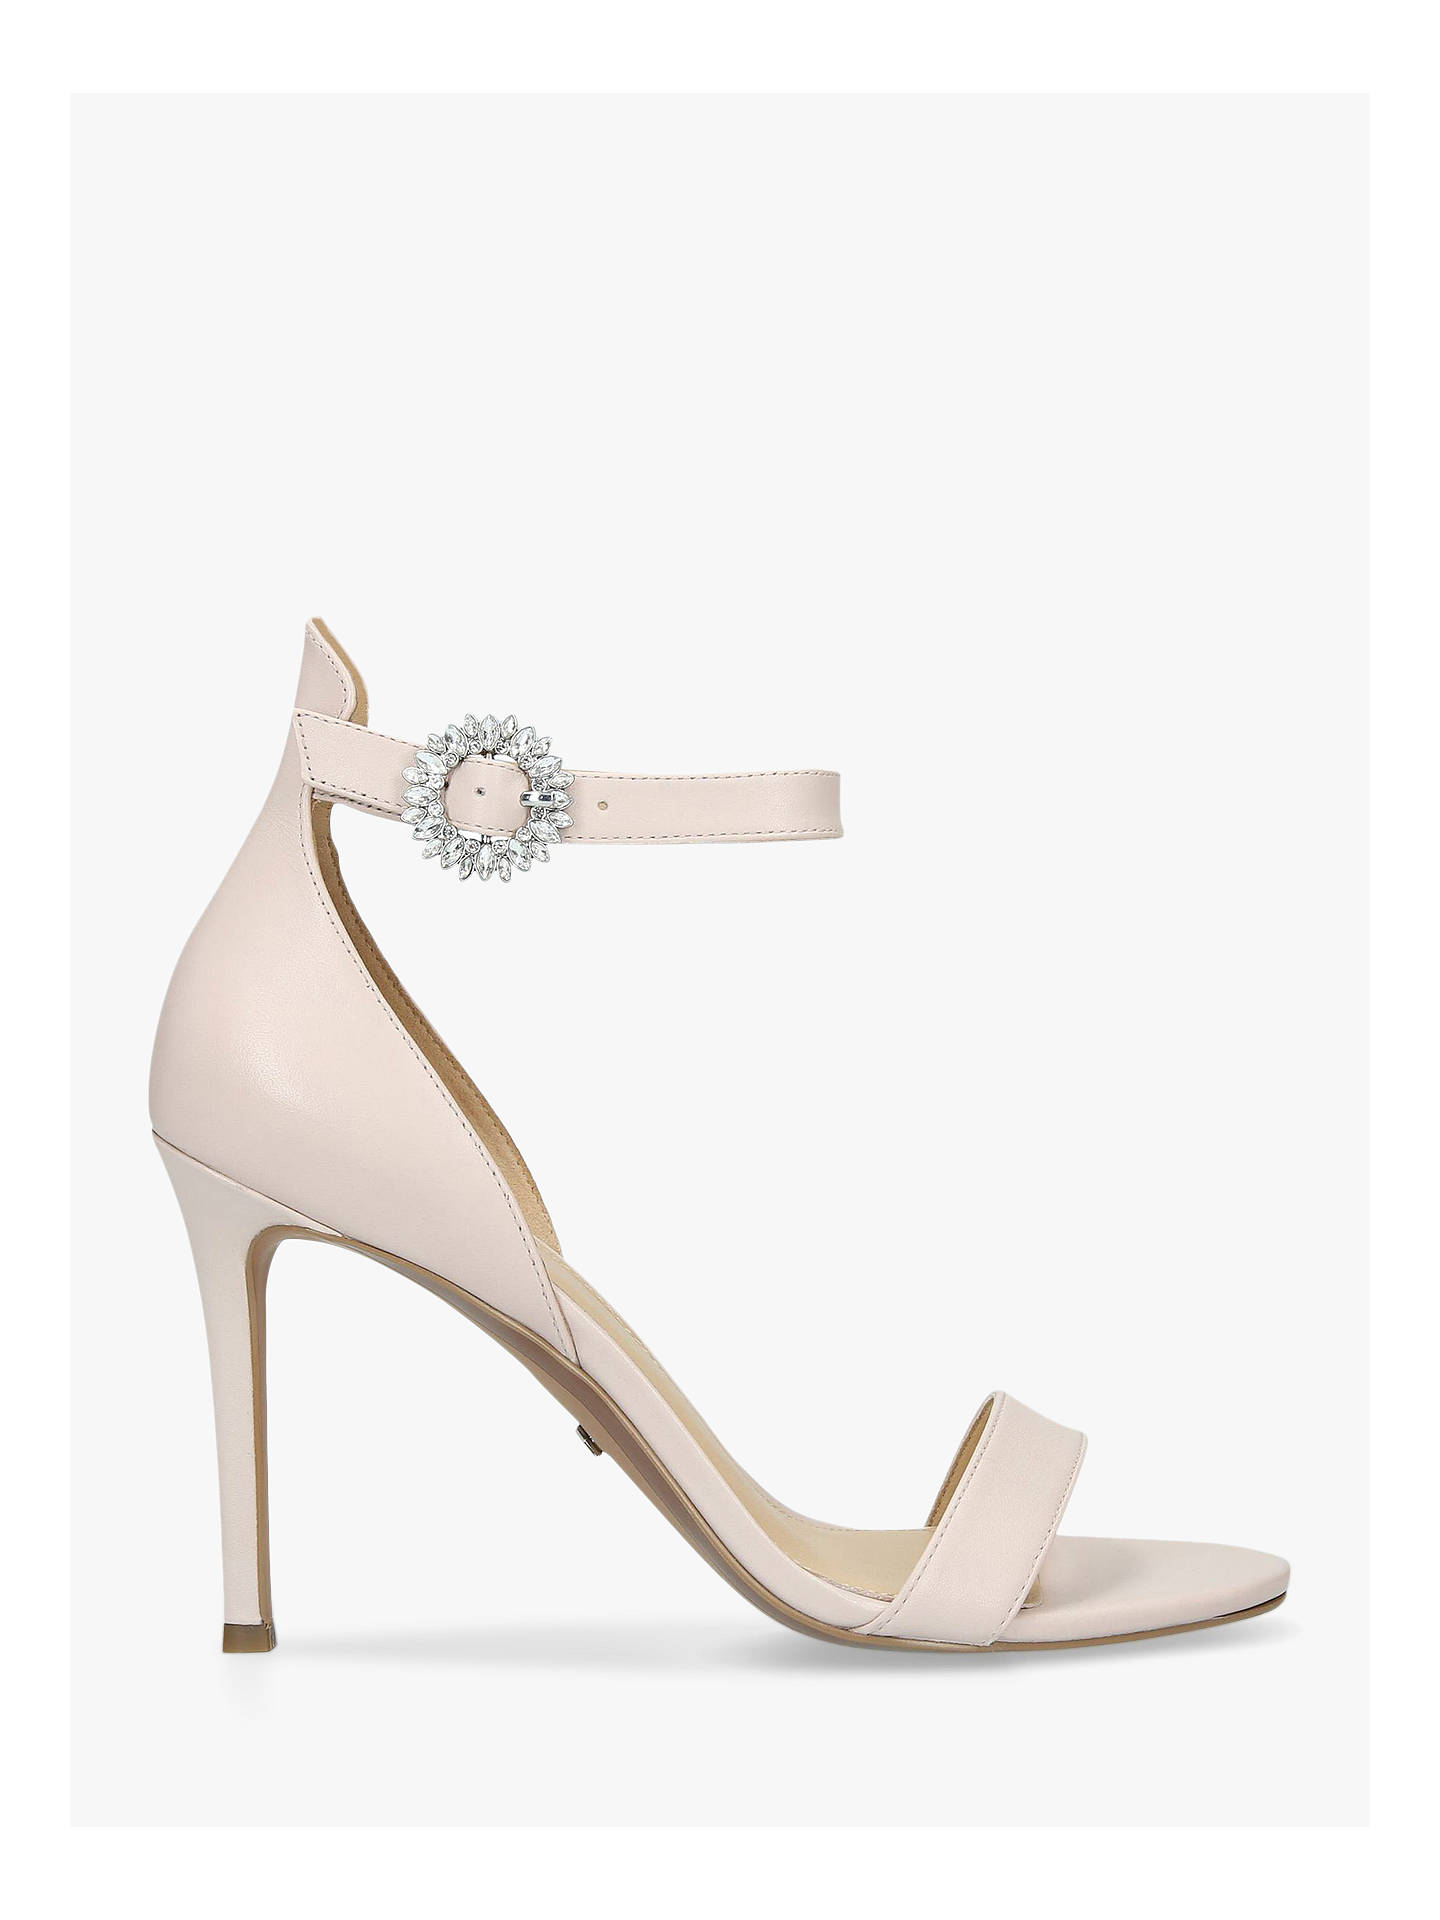 ca1d8a1d682c Buy MICHAEL Michael Kors Viola Stiletto Heel Sandals, Pink Leather, 4  Online at johnlewis ...